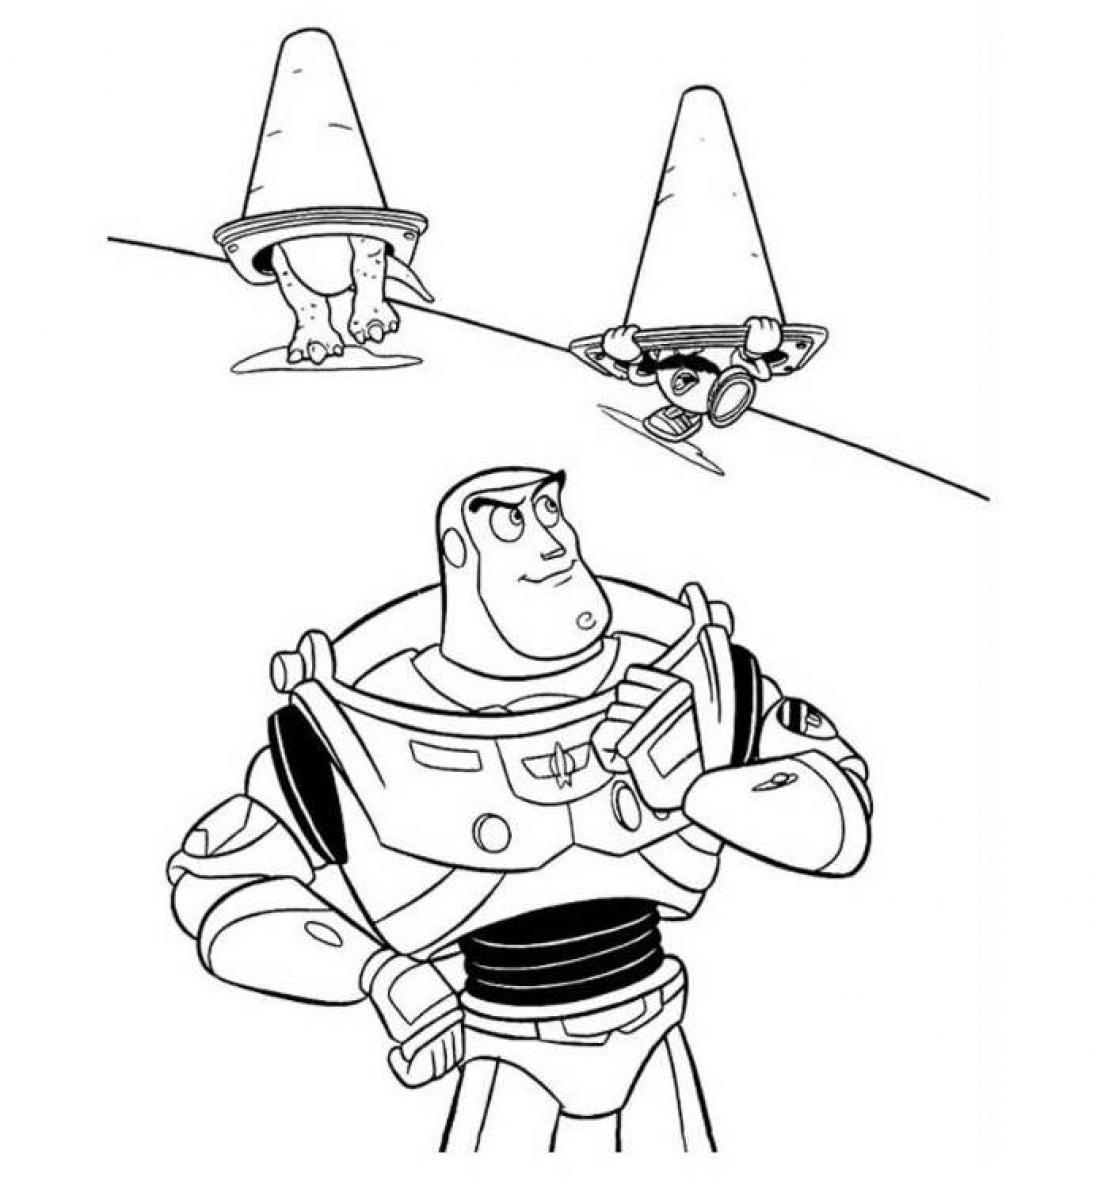 buzz lightyear printable coloring pages buzz lightyear coloring page toy story coloring pages lightyear printable buzz pages coloring